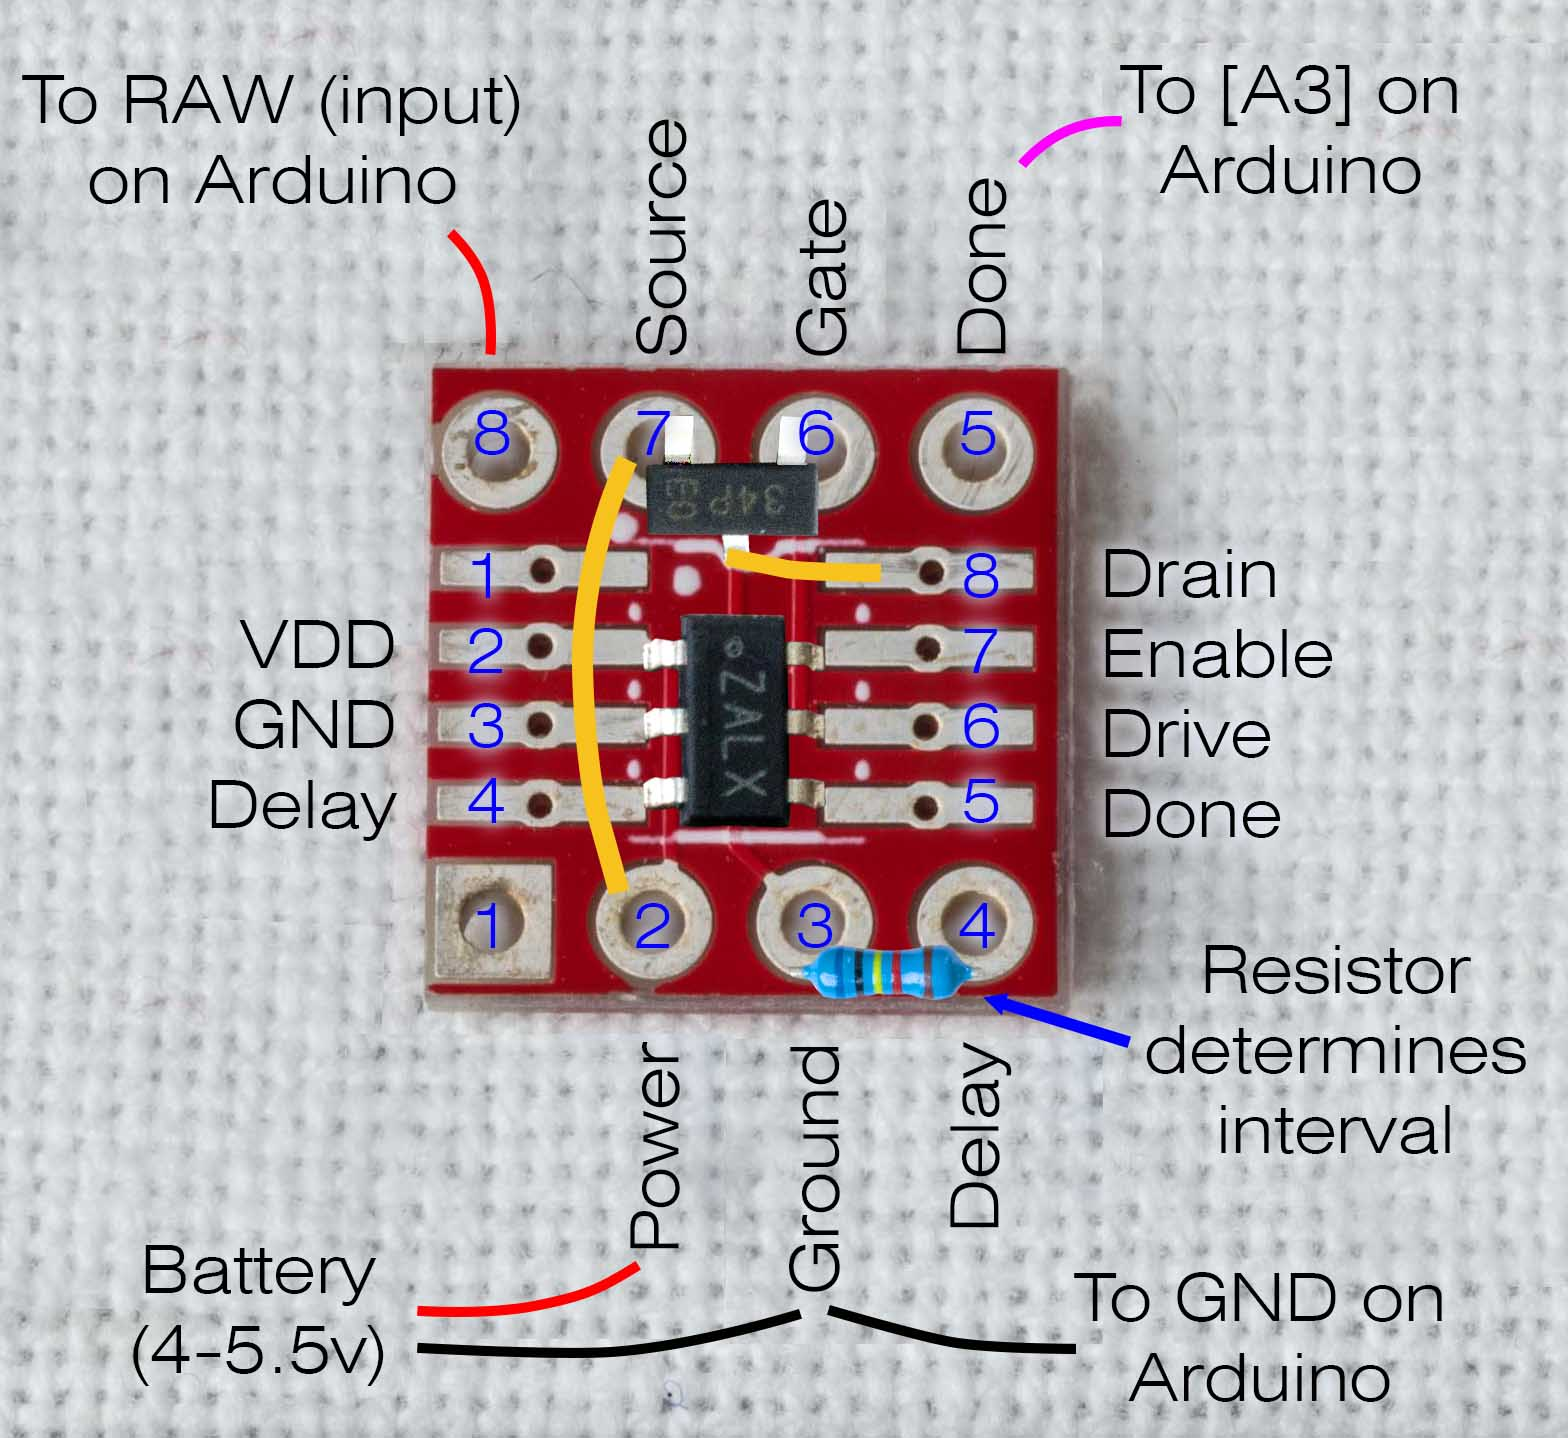 Public Lab How To Make A Low Power Timer Diy Sot 23 Adapter Figure 1 Build Diagram For Log Long Solder Pads 8 Connect With Pcb Copper Traces Pin Holes Respectively Only Number Is Not Used